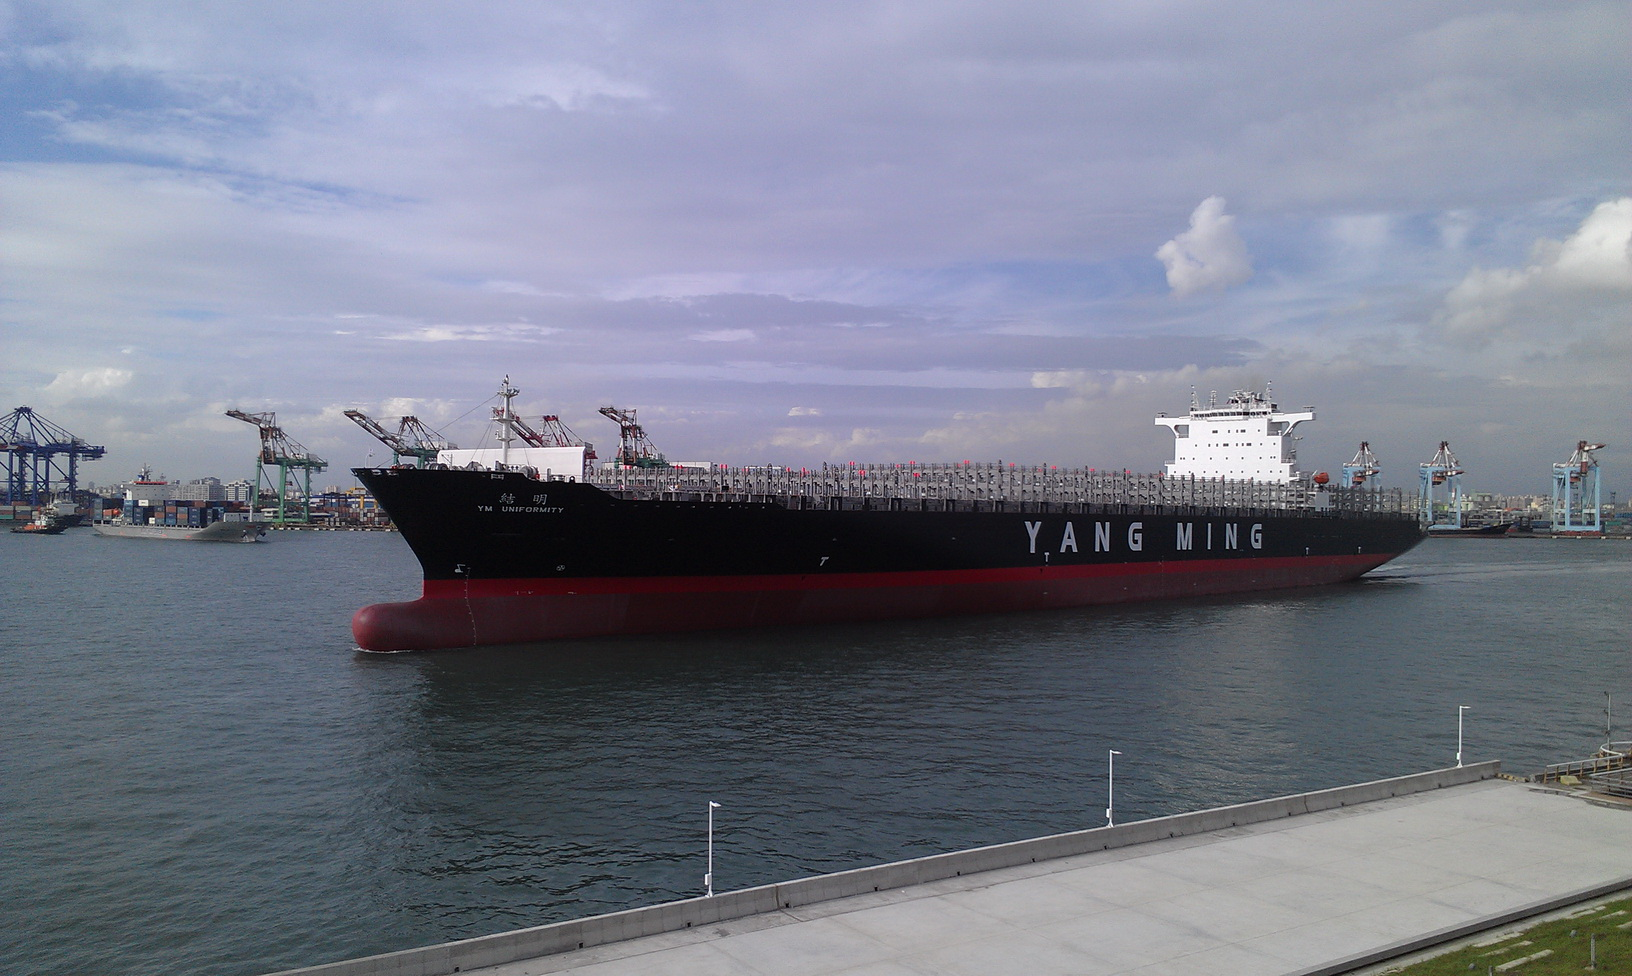 Come to Hongmaogang if you want to see a 100,000-ton freight ship that has the same tonnage as a super aircraft carrier